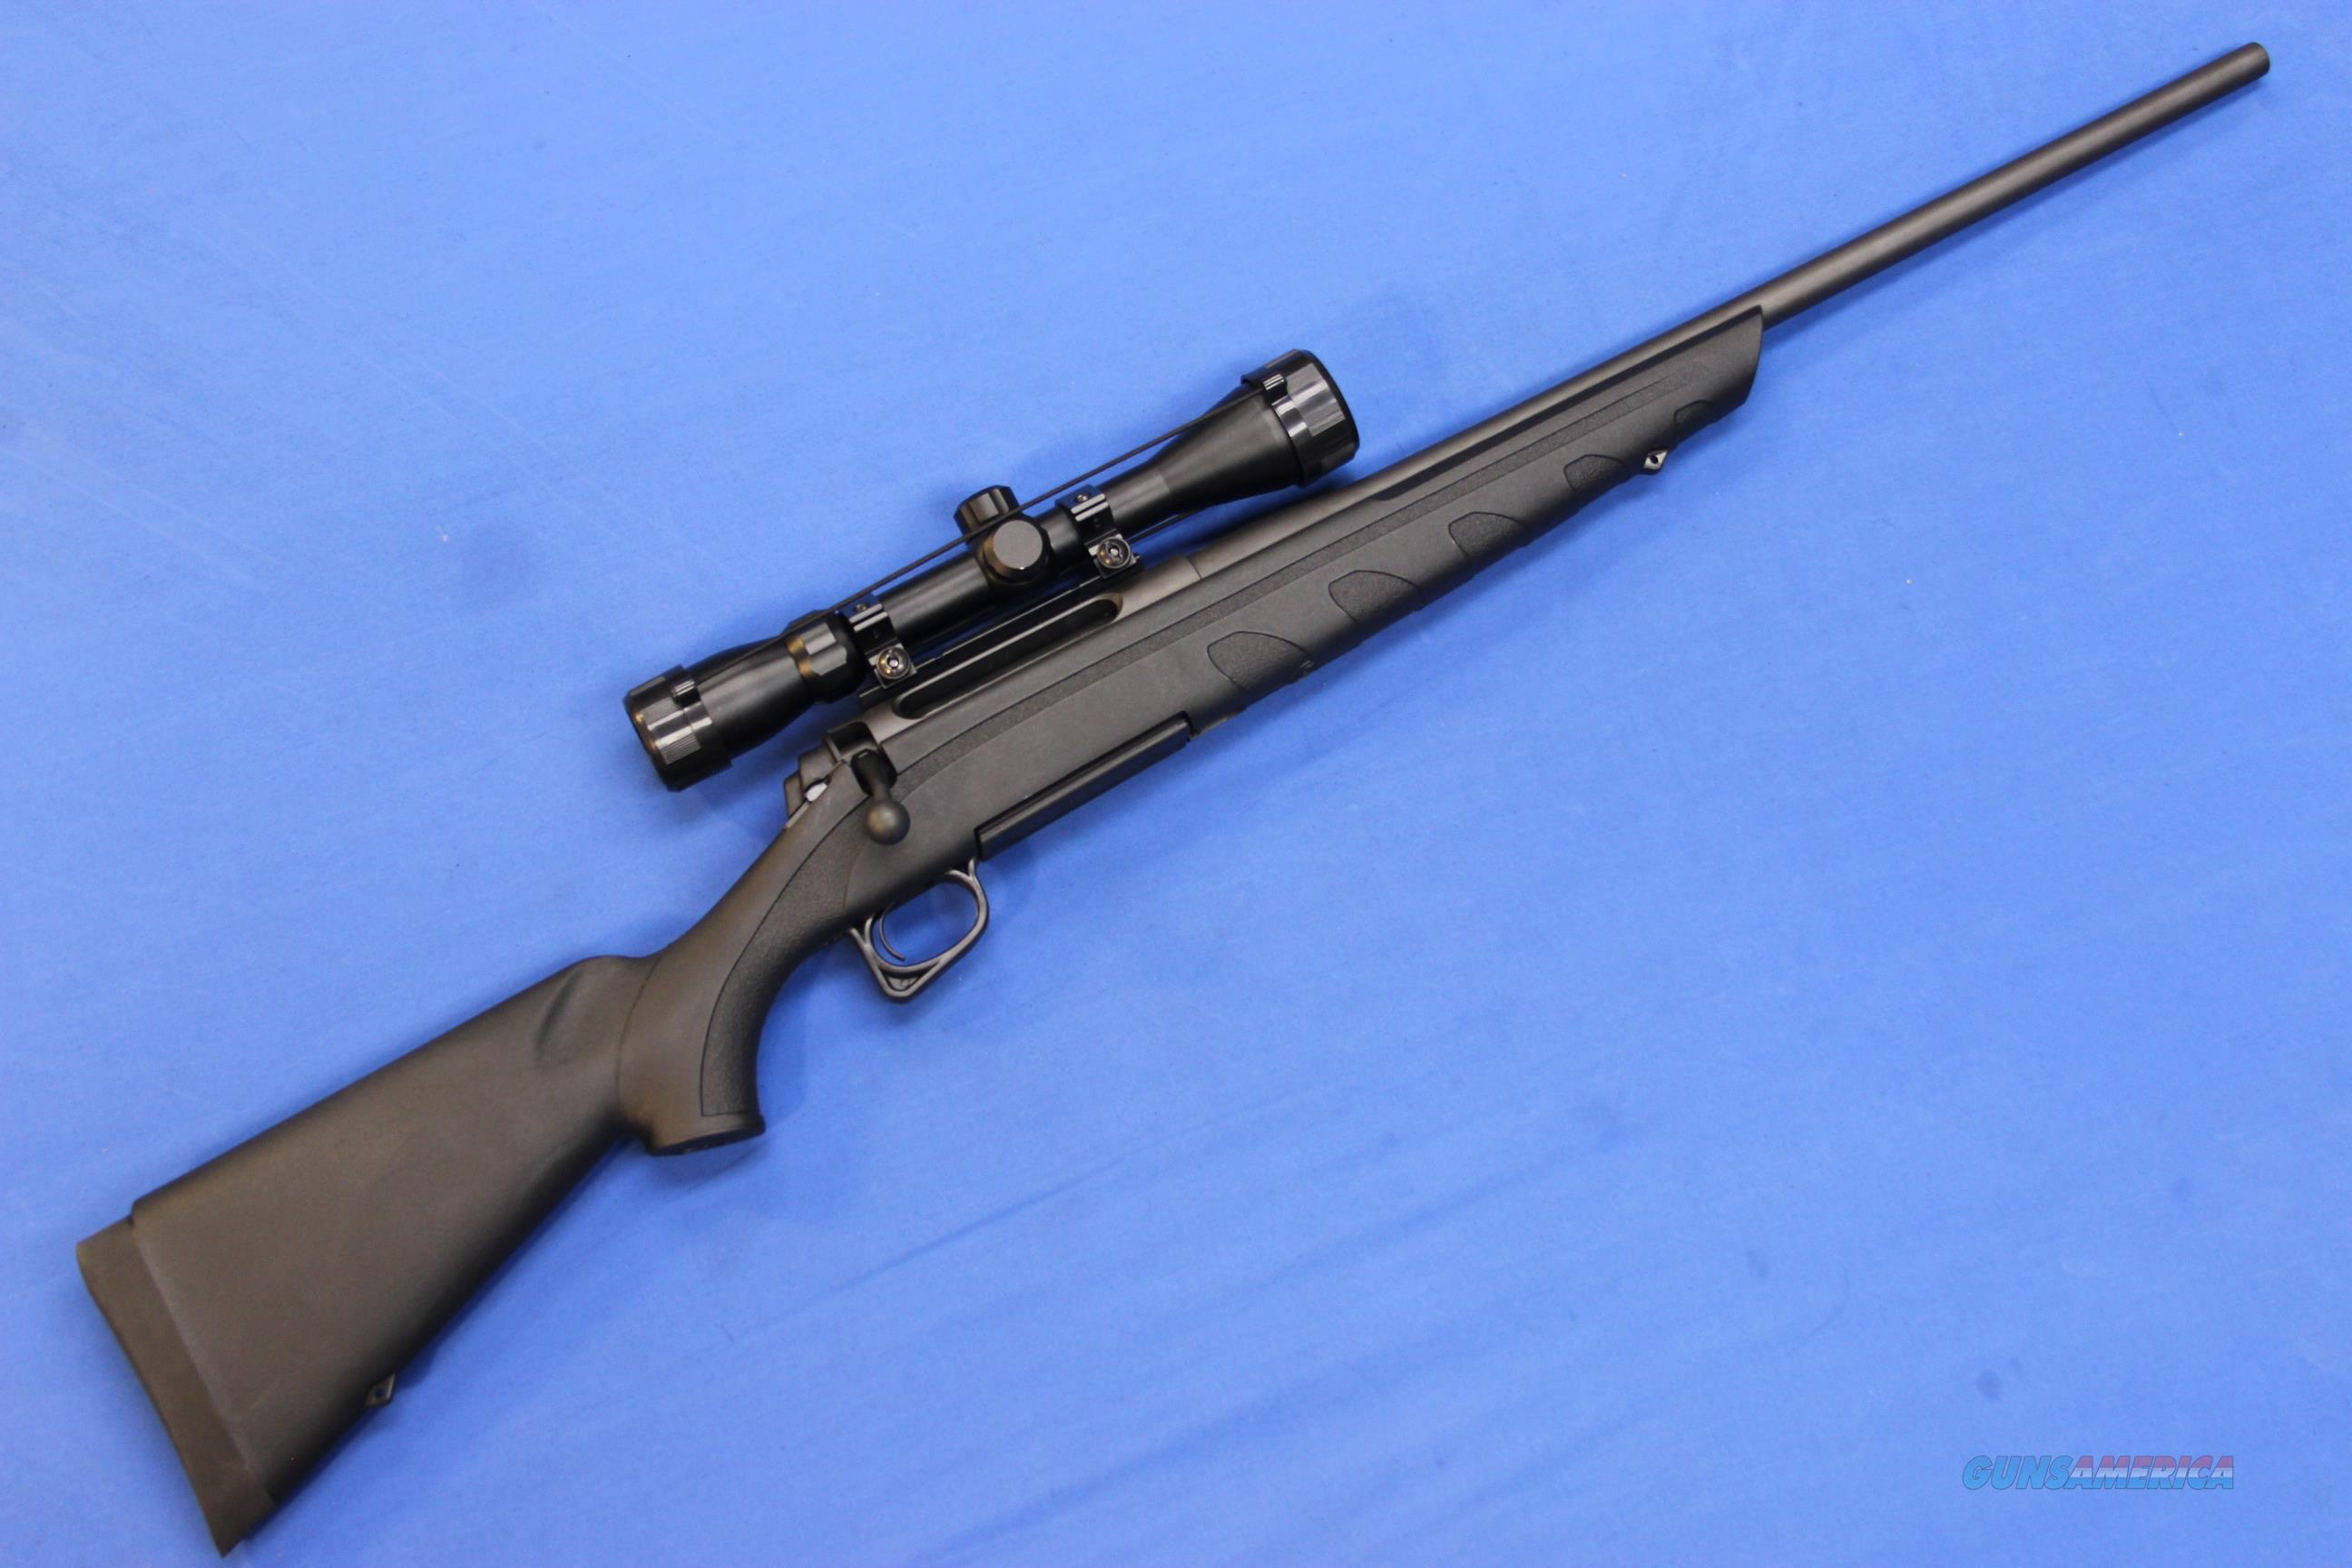 REMINGTON 770 .270 WINCHESTER w/ SCOPE   Guns > Rifles > Remington Rifles - Modern > Other